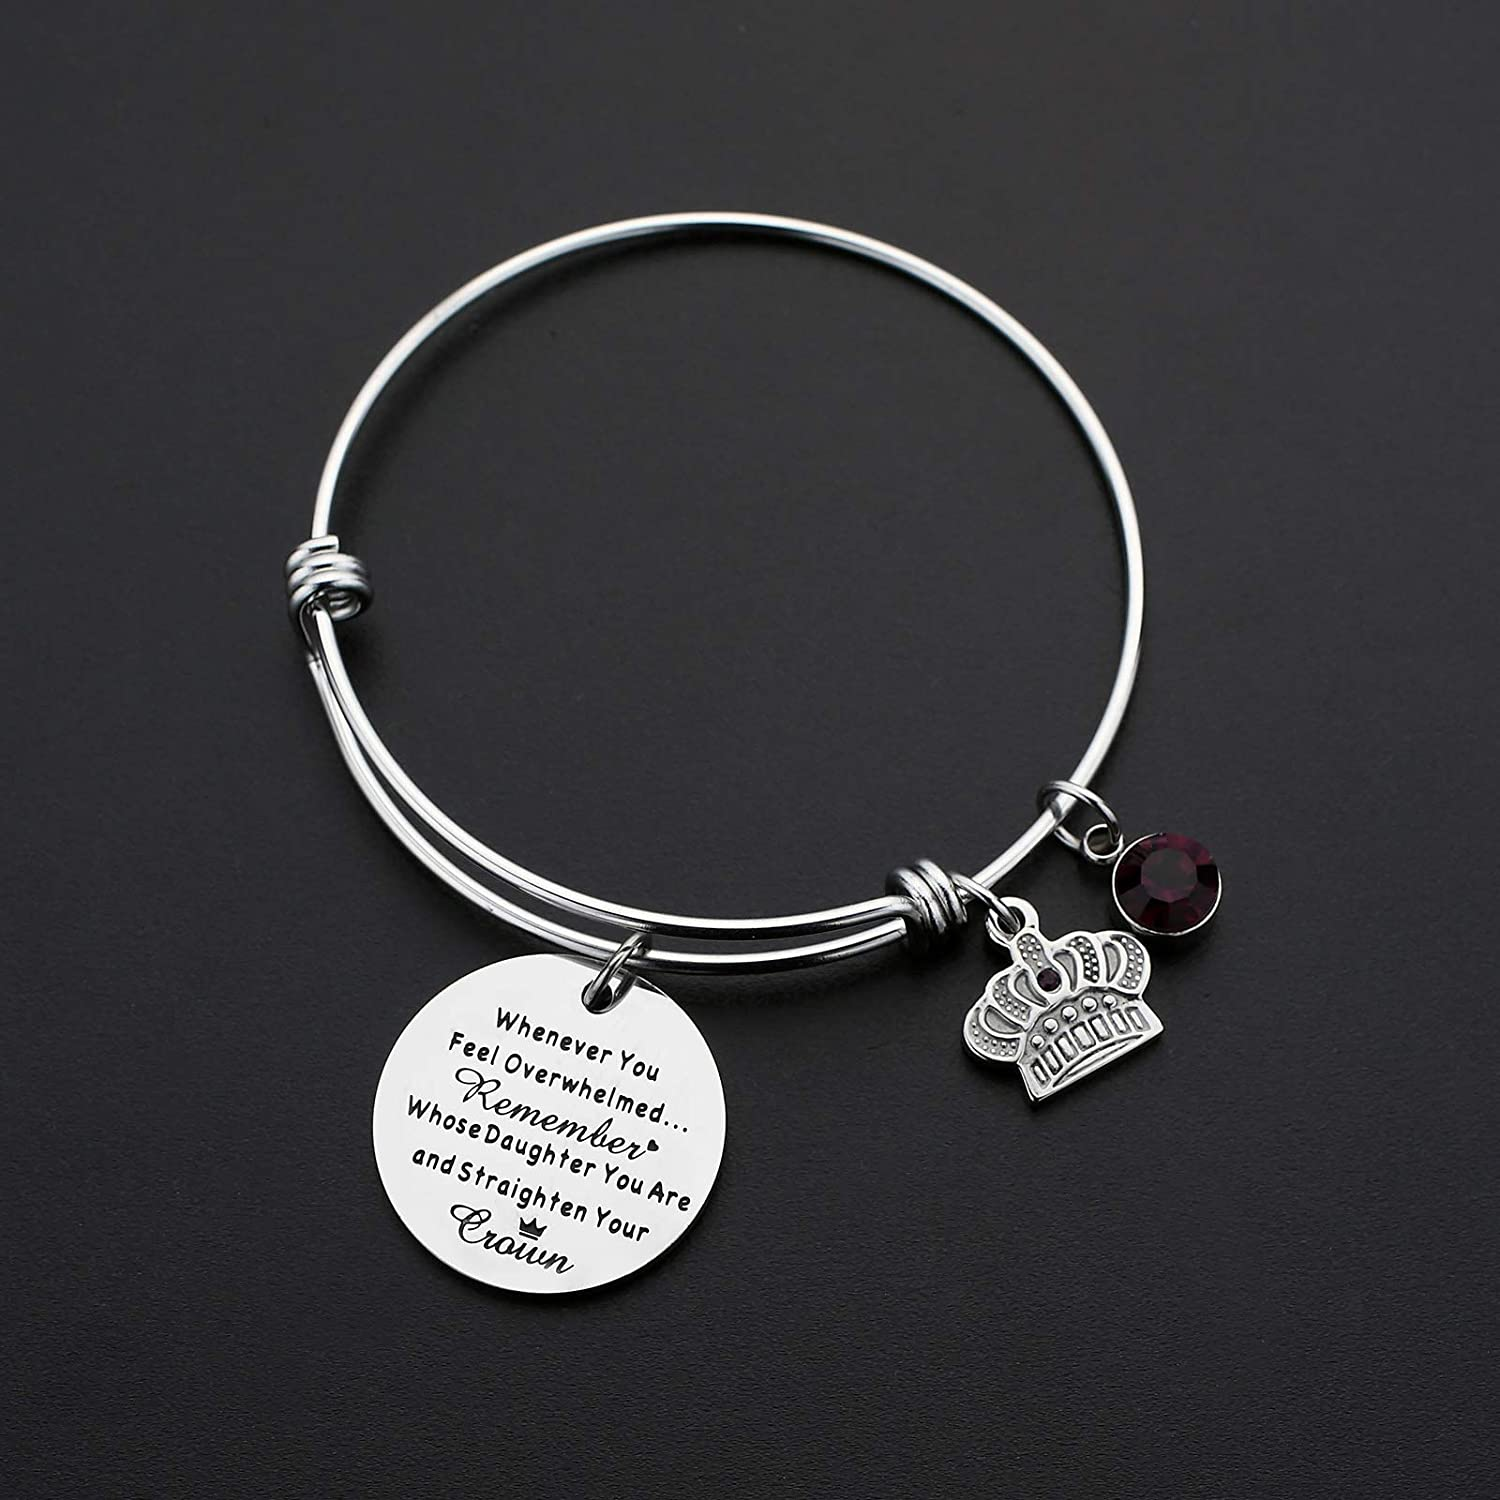 Remember Whose Daughter You are and Straighten Your Crown Charm Daughter Bracelet Whenever You Feel Overwhelmed